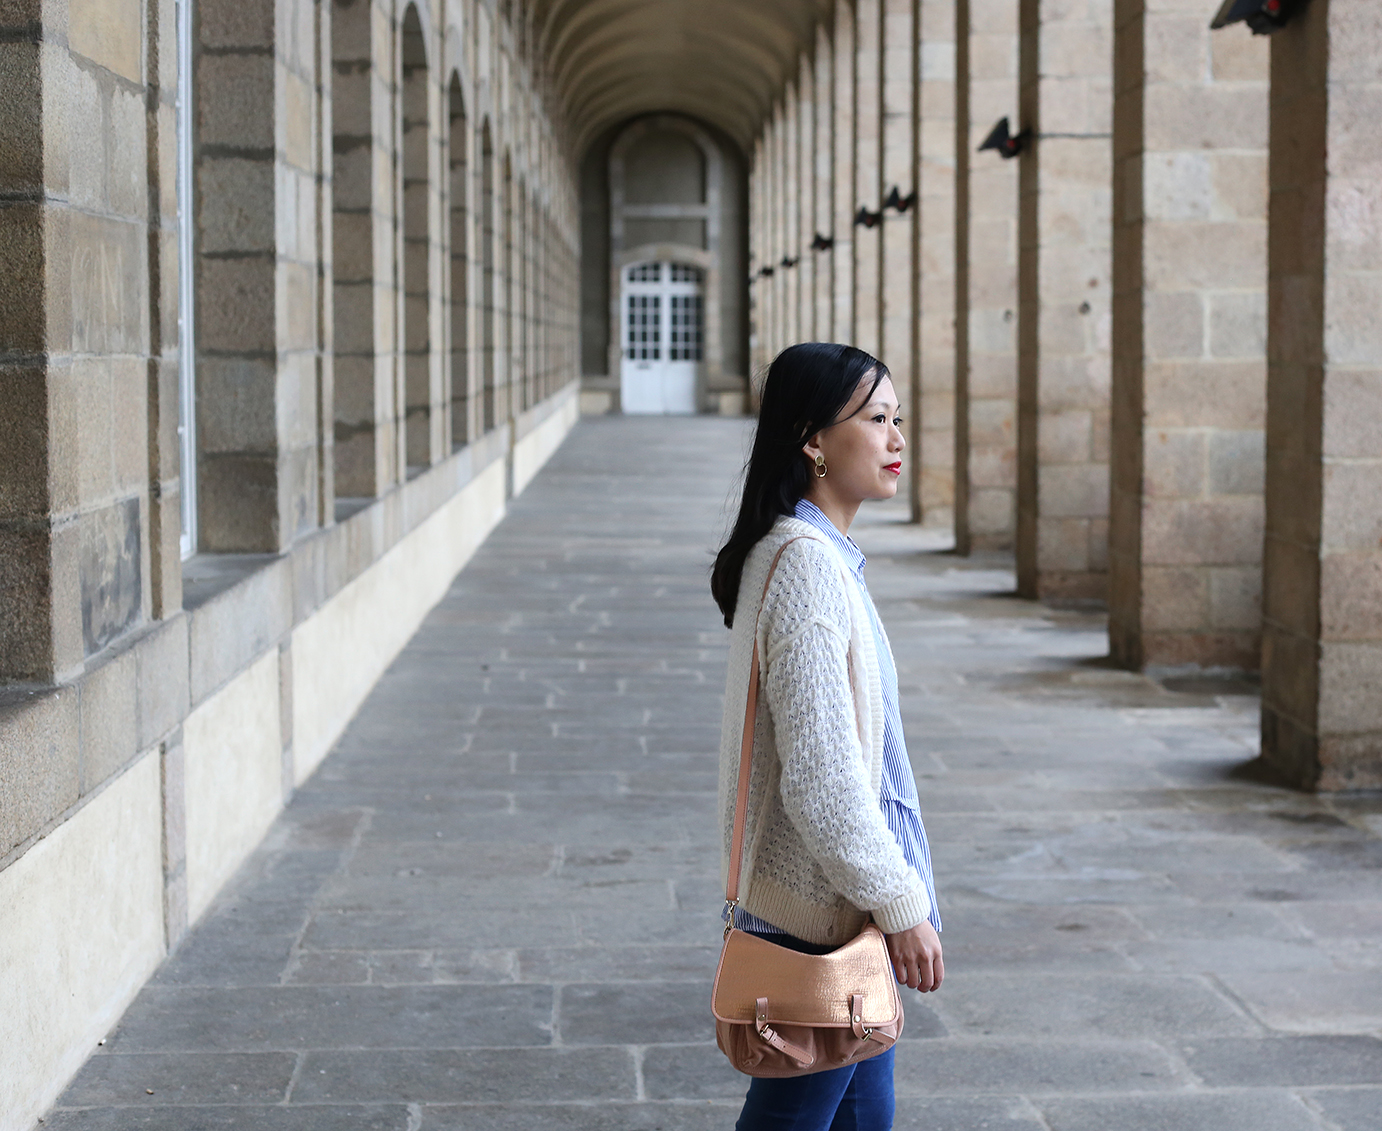 petite and so what - uniforme d hiver 5